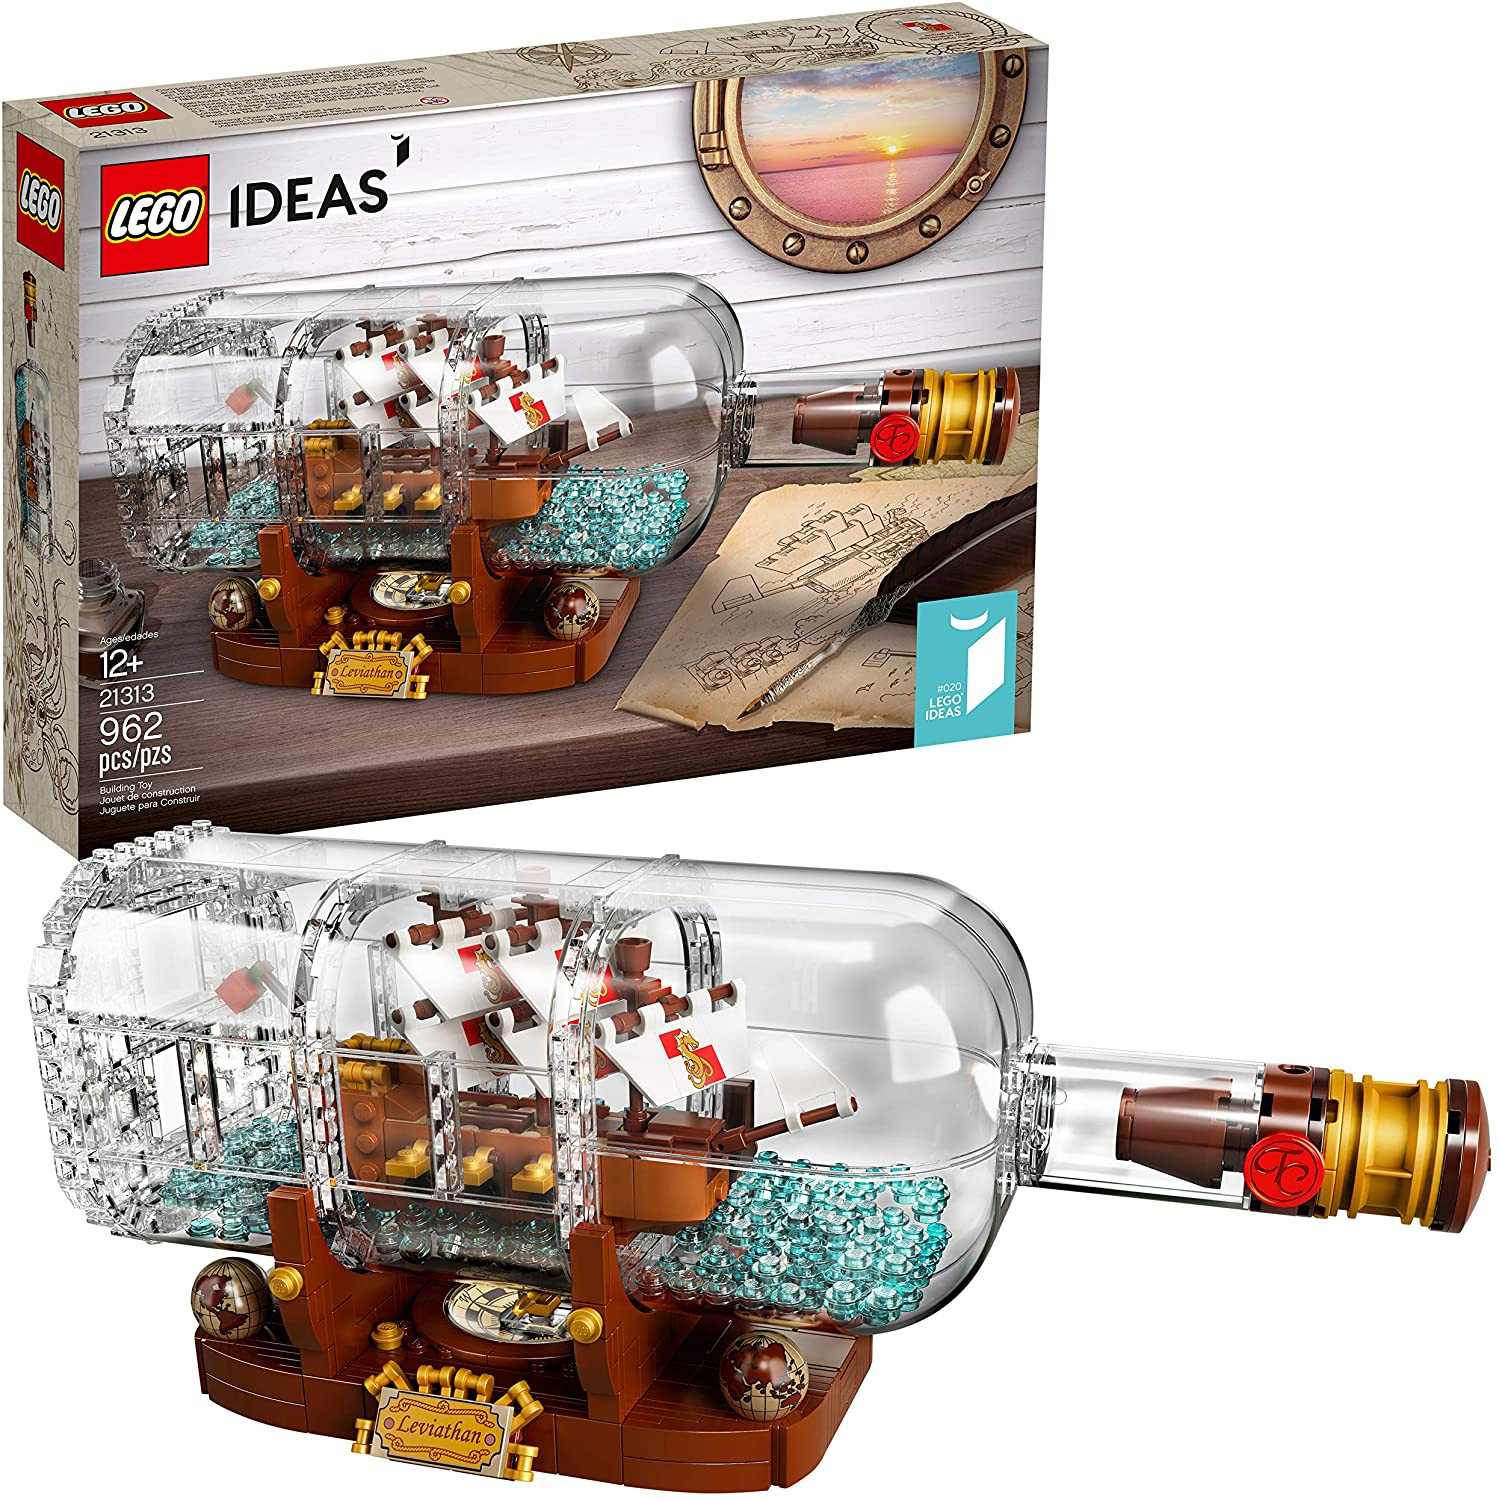 Geek Gifts For Kids  Lego Ship in a Bottle Geek Gifts for Kids